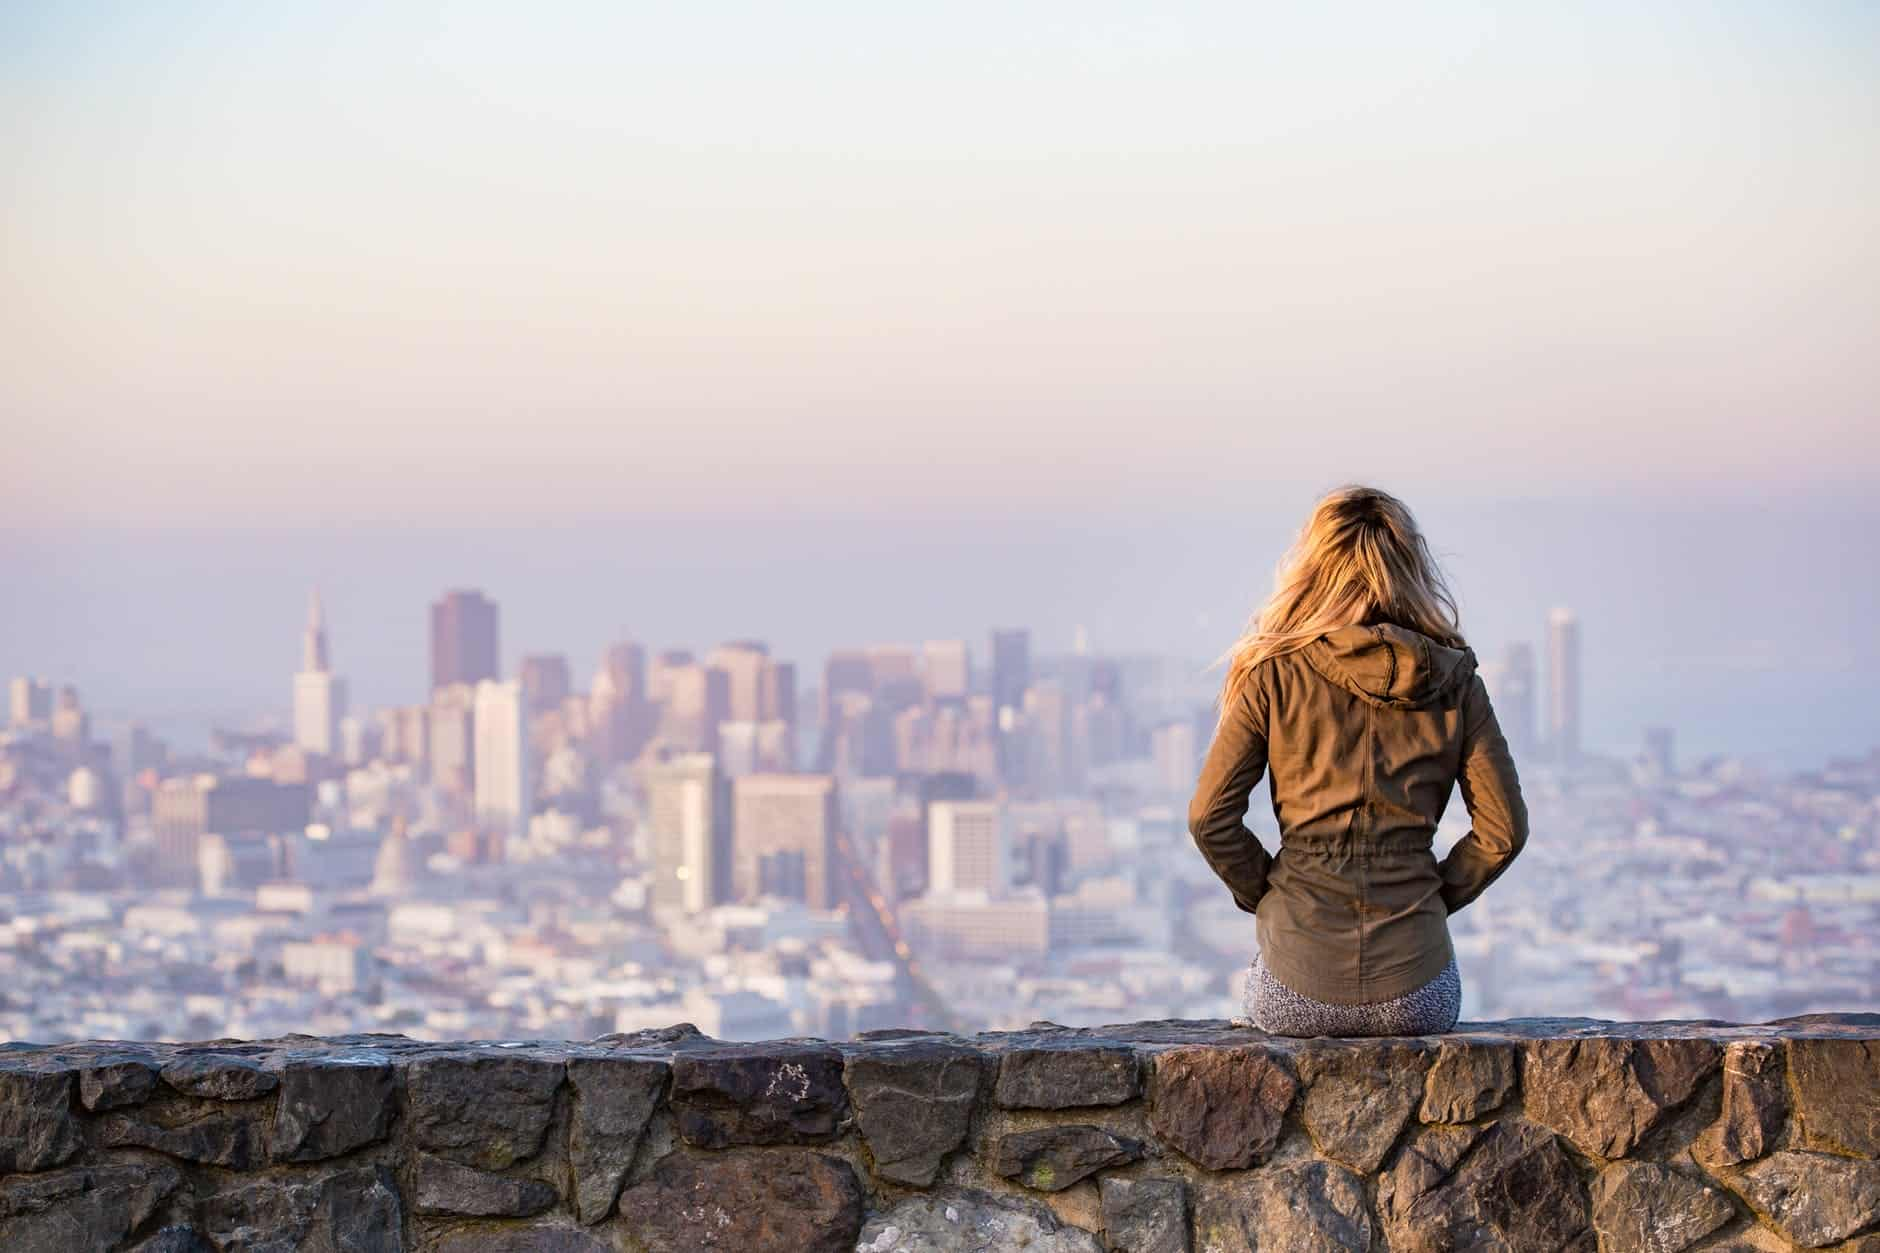 woman on rock platform viewing city, showing financial freedom